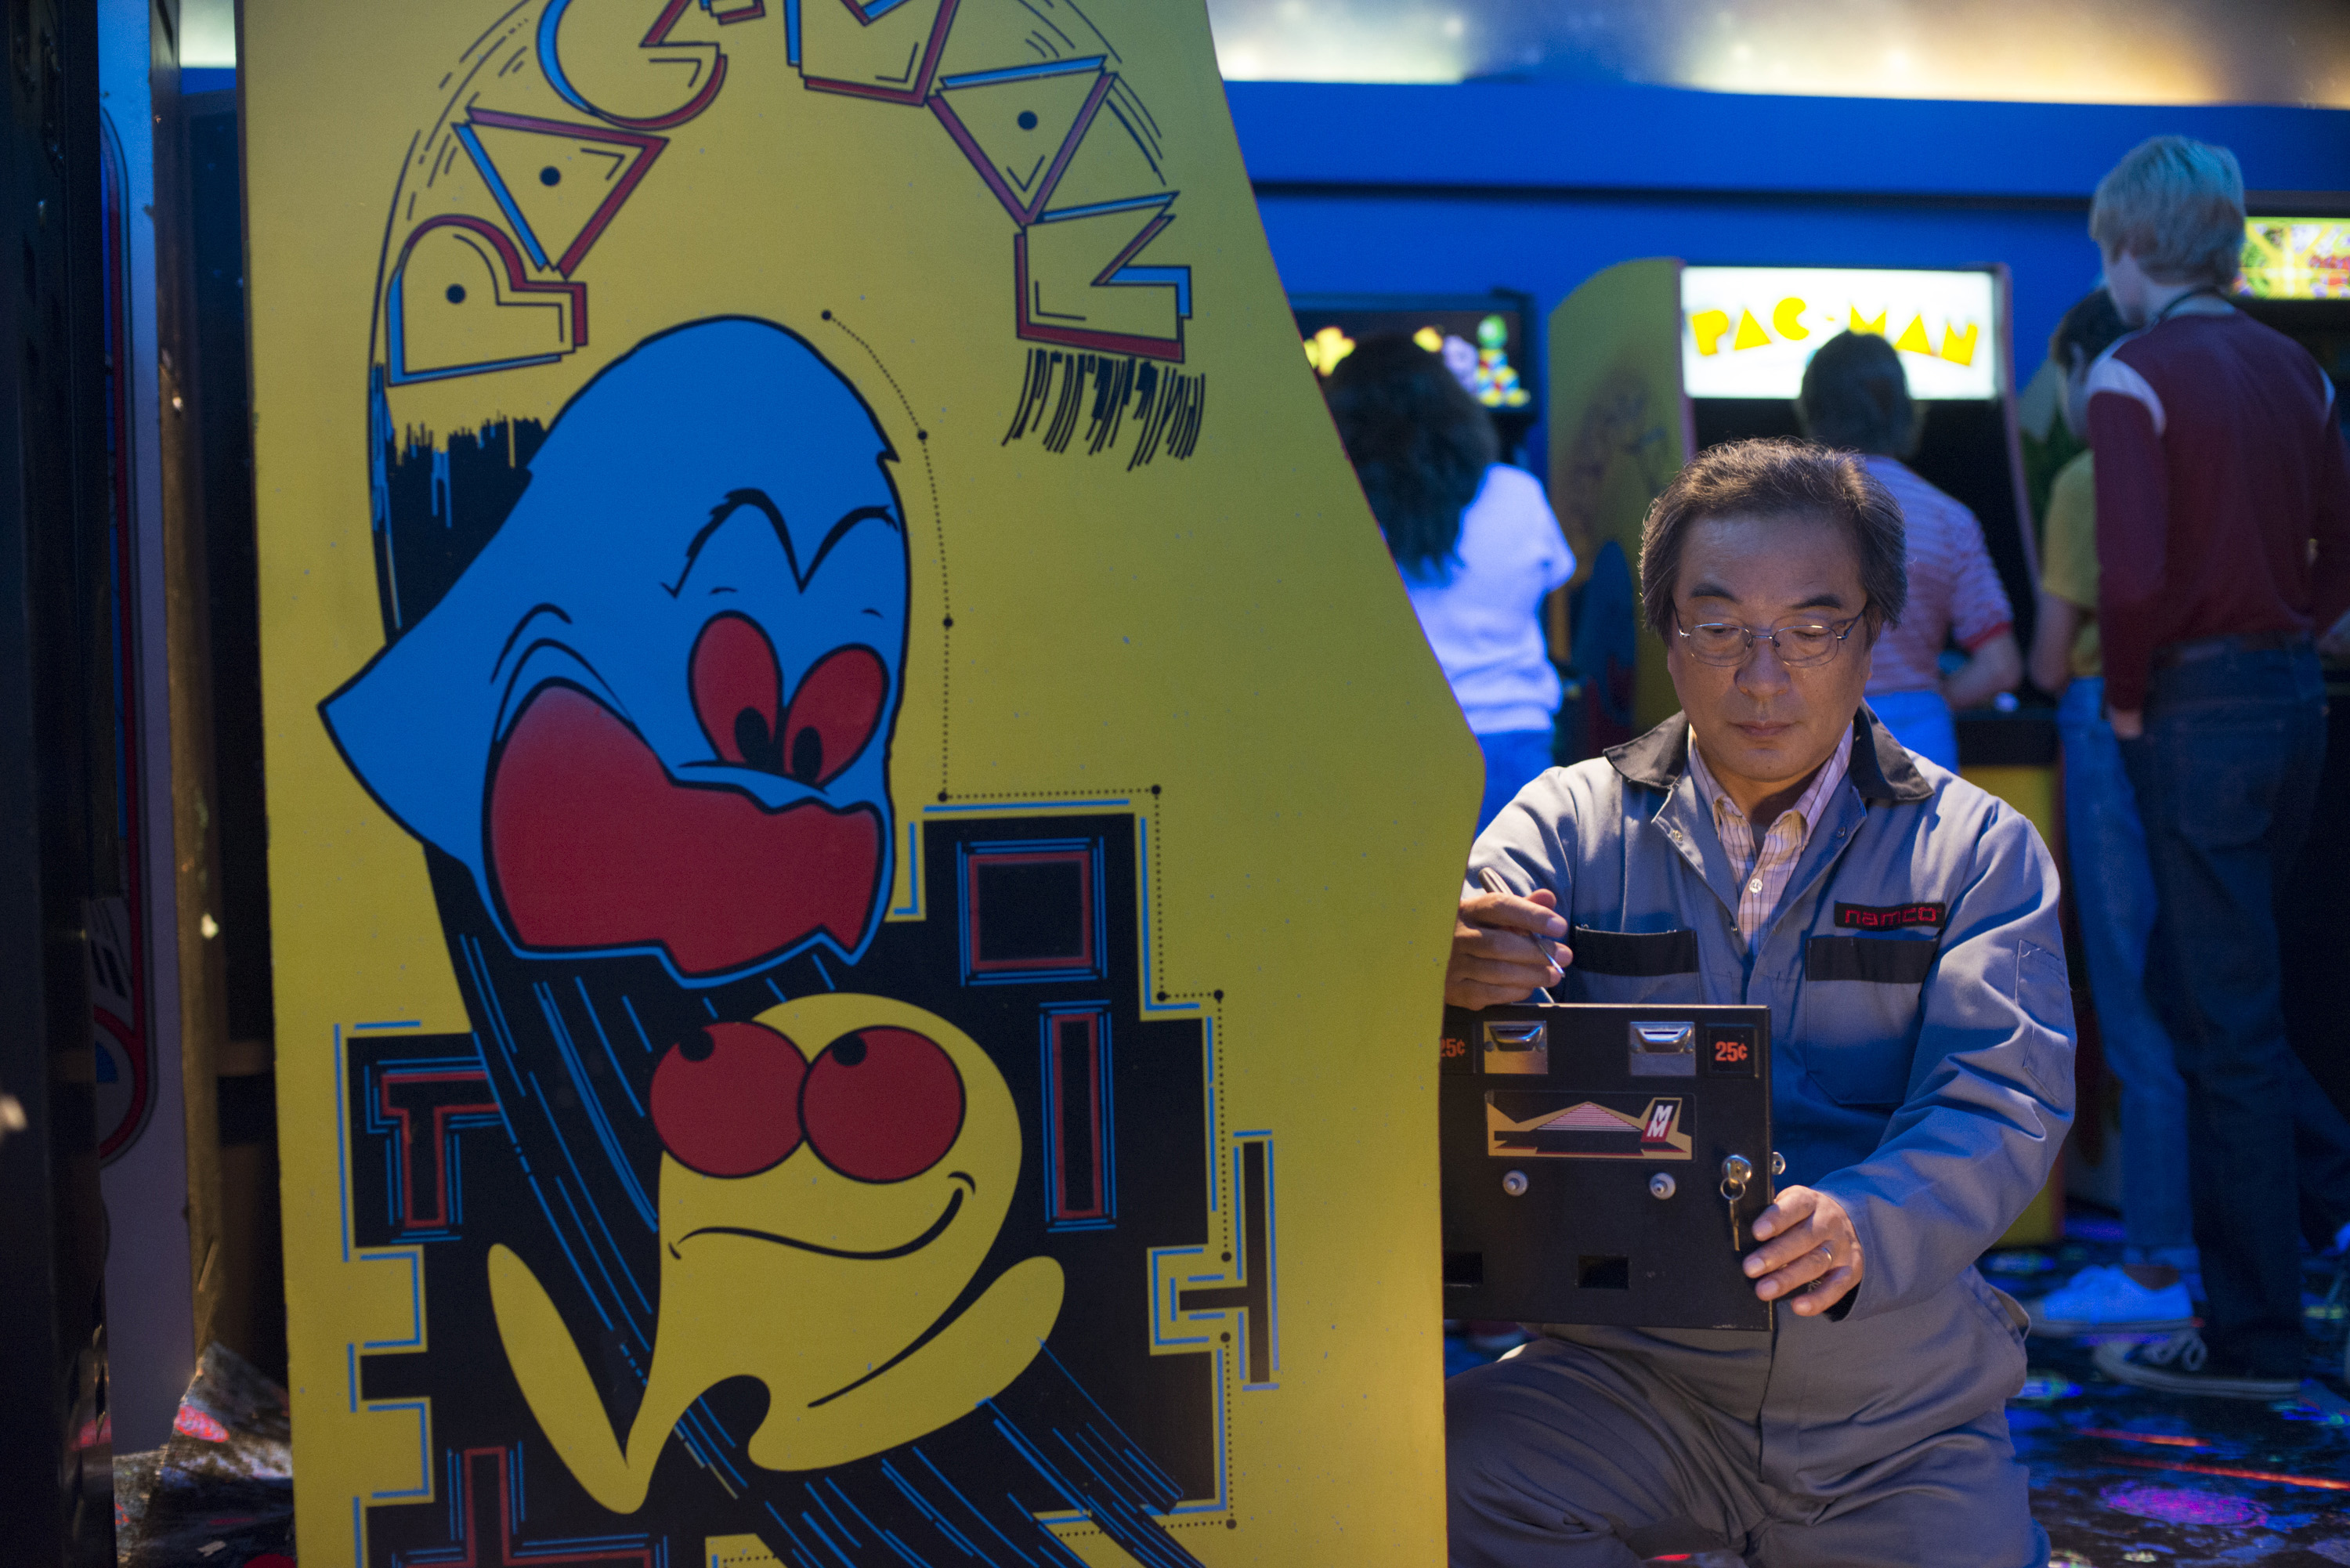 Some things can't be fixed: The real-life creator of Pac-Man, Toru Iwatani, makes a cameo in 'Pixels' as a repairman. Back in Japan, Iwatani works as a professor at Tokyo Polytechnic University teaching game design.   © 2015 CTMG, INC. ALL RIGHTS RESERVED.